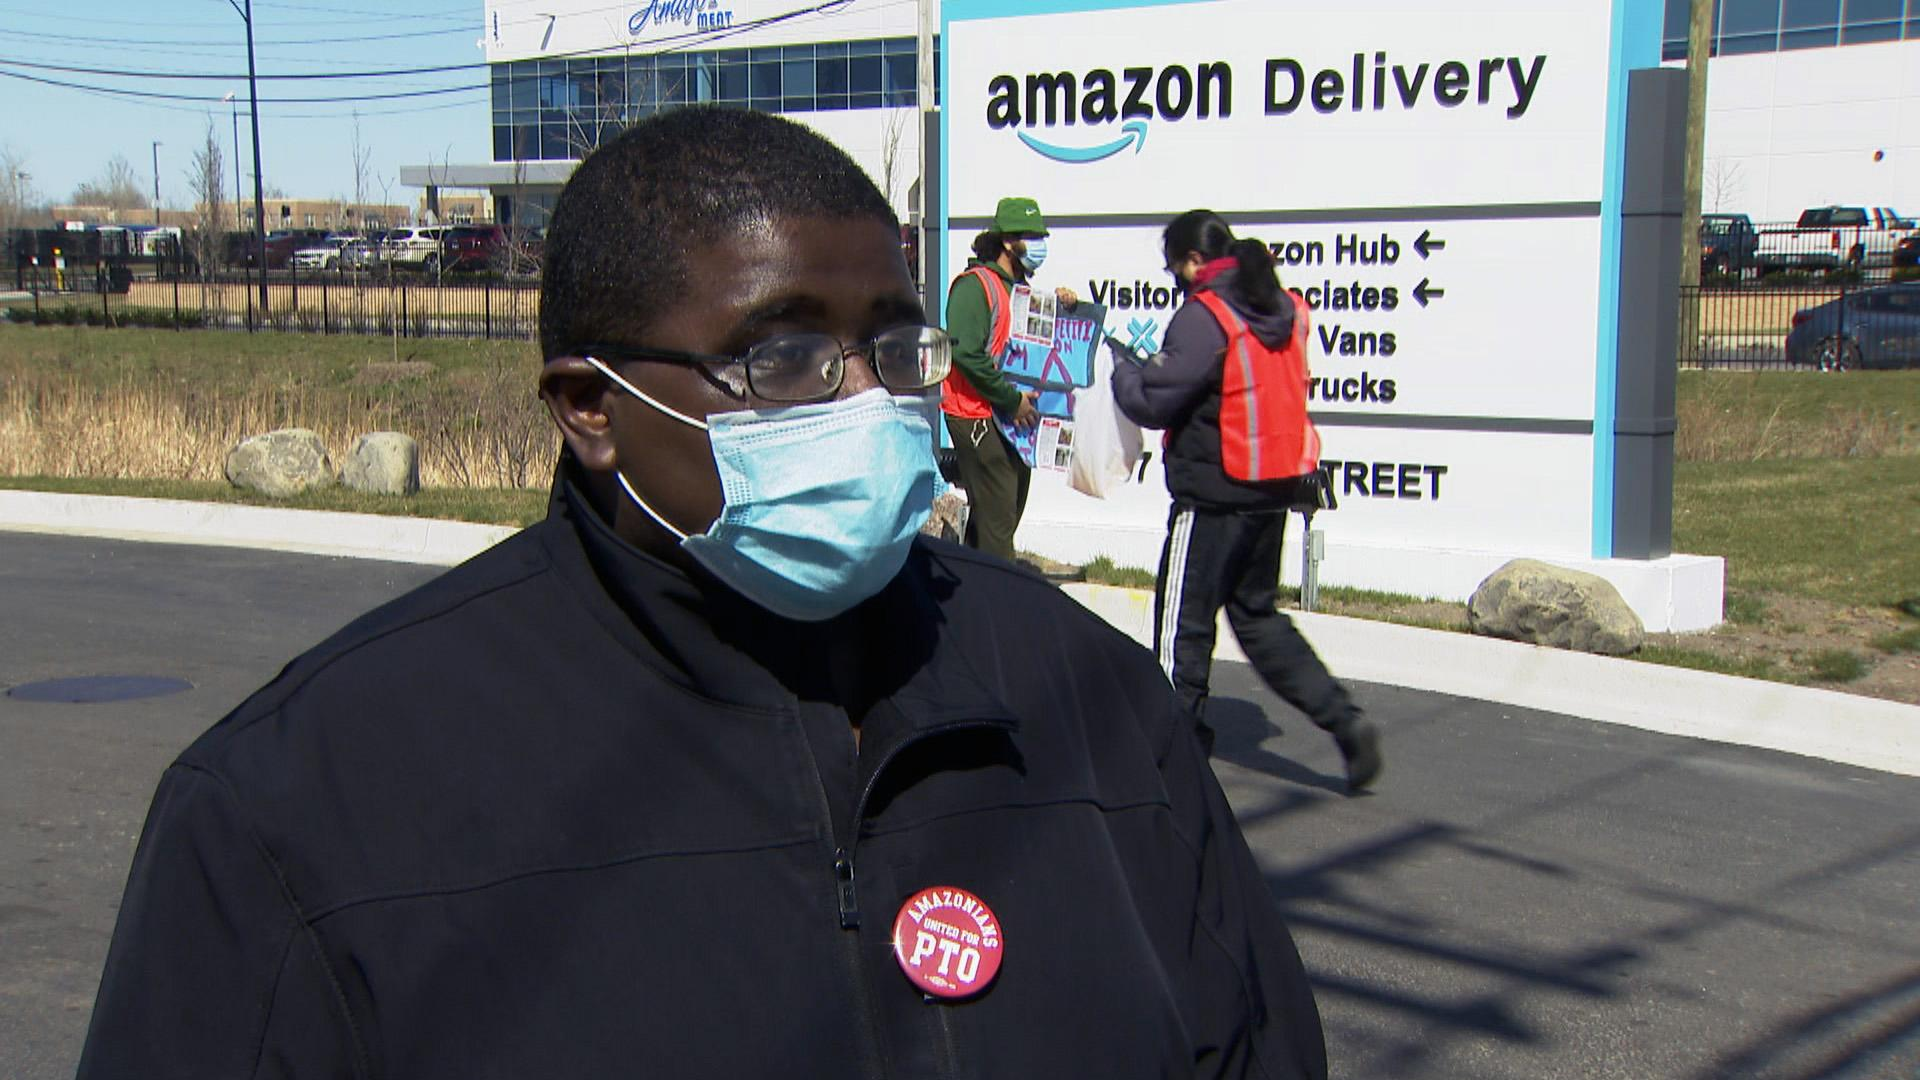 Amazon Employees in Chicago Demand Accommodations for 'Brutal' Shift